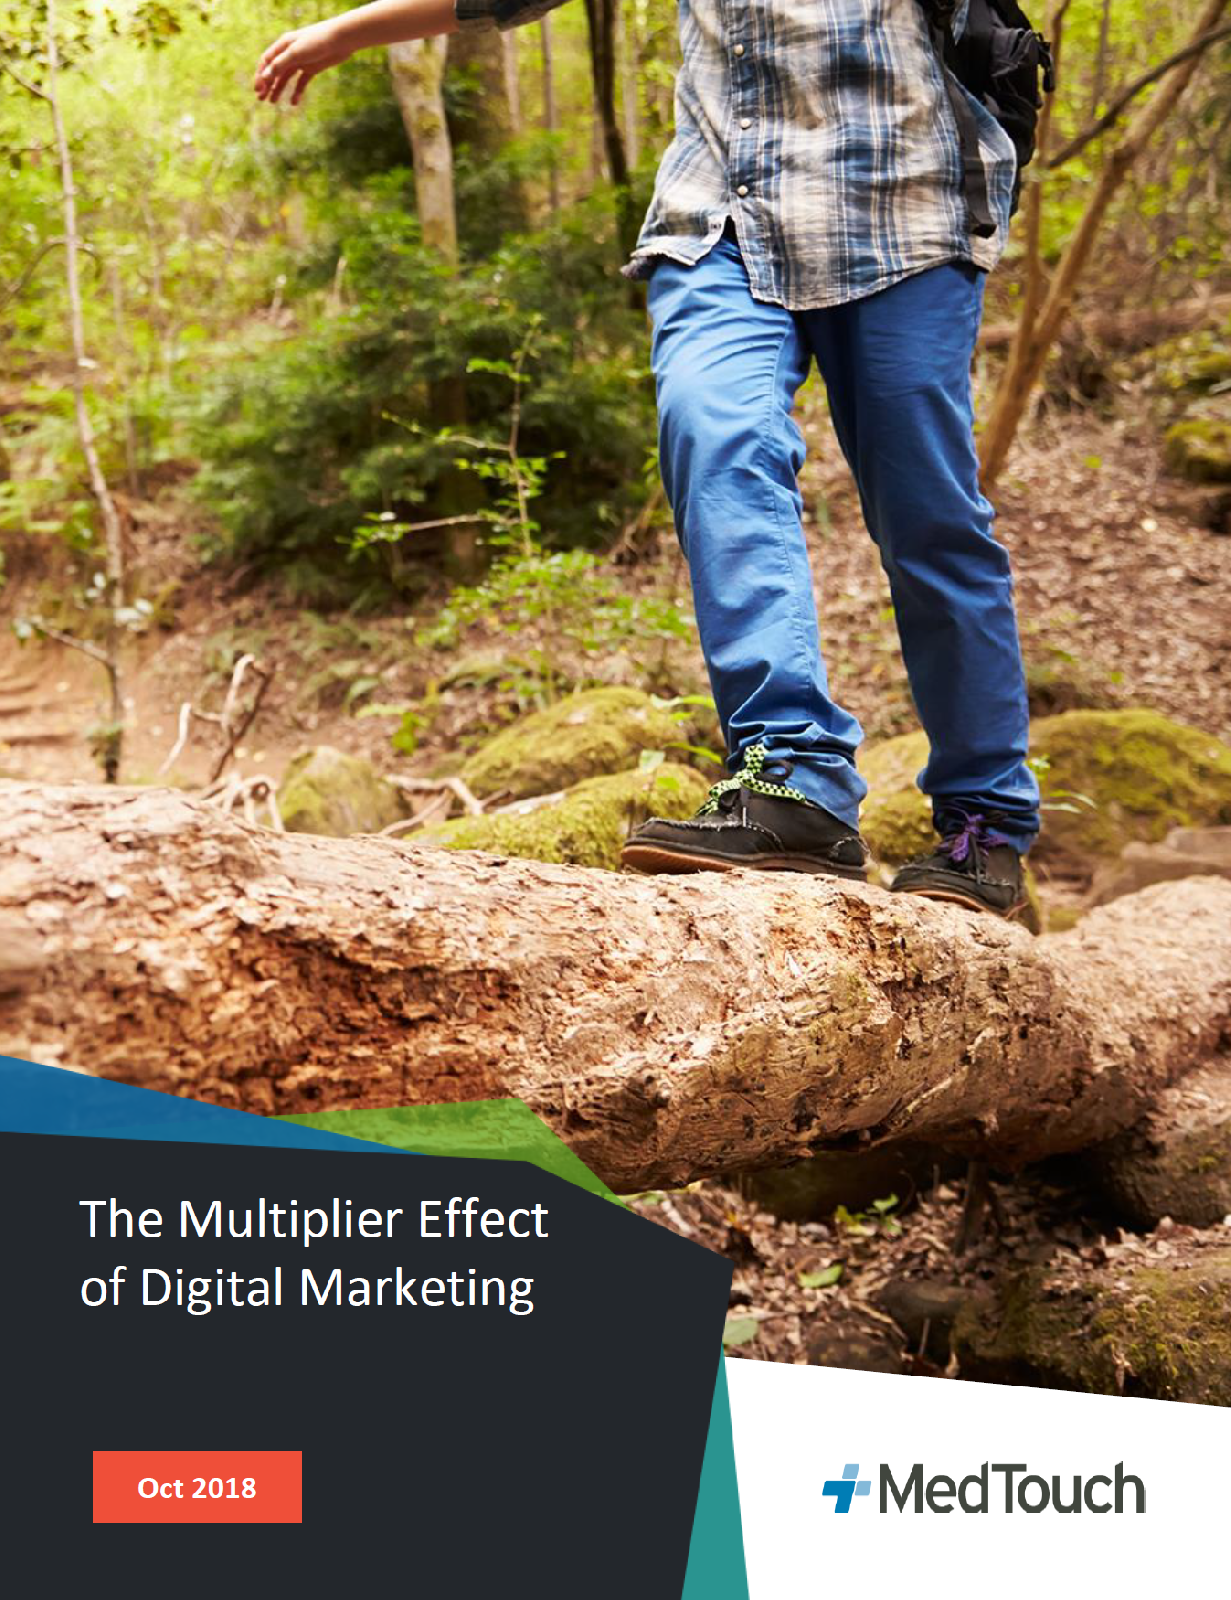 The Multiplier Effect of Digital Marketing